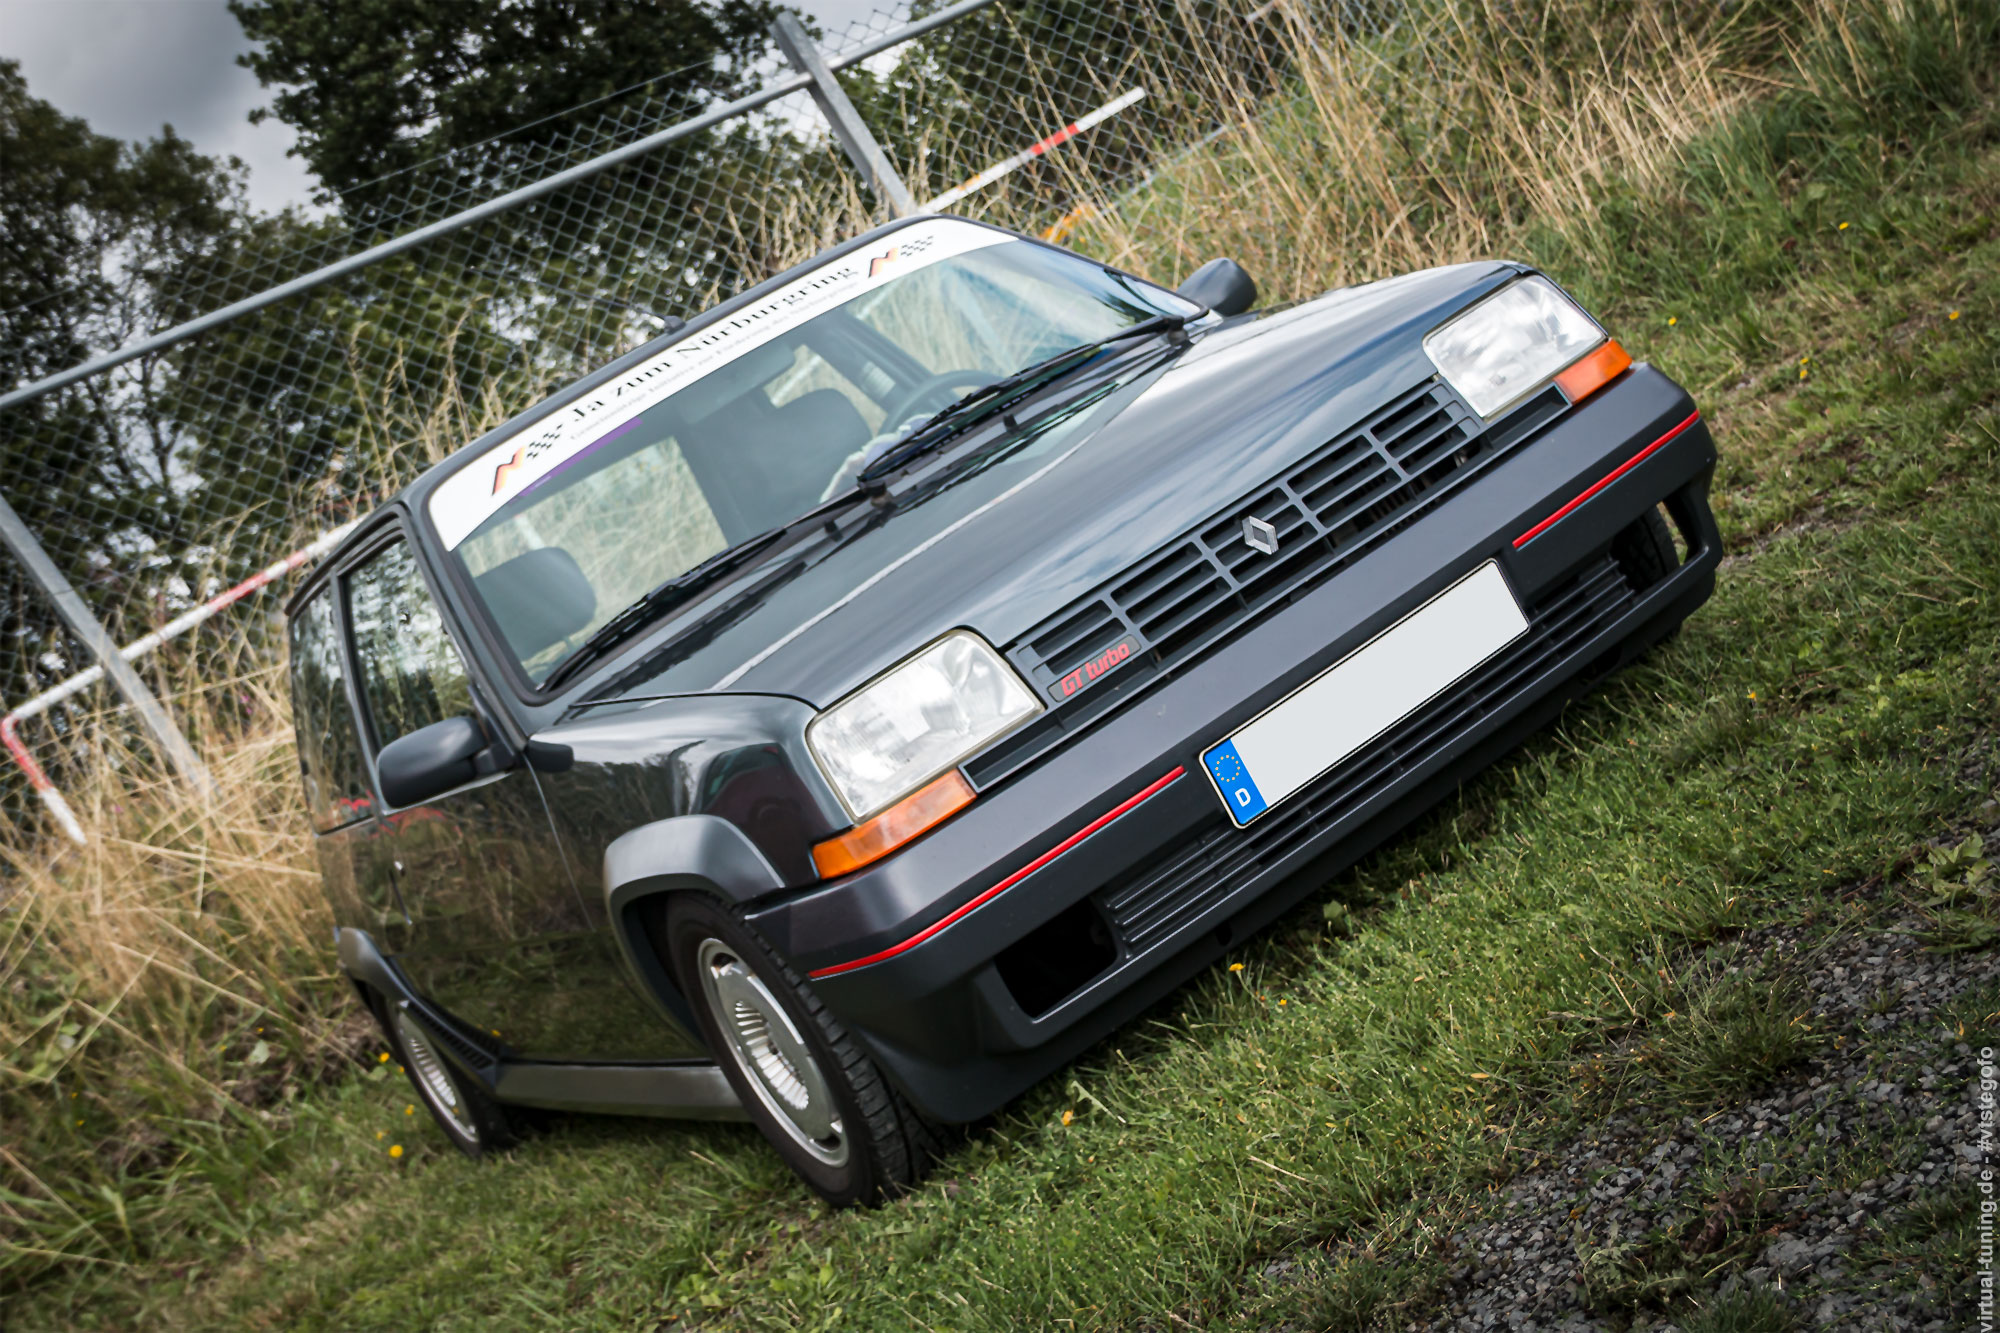 Renault 5 GT Turbo - D'ARC Sommerfest 2019 am Nürburgring